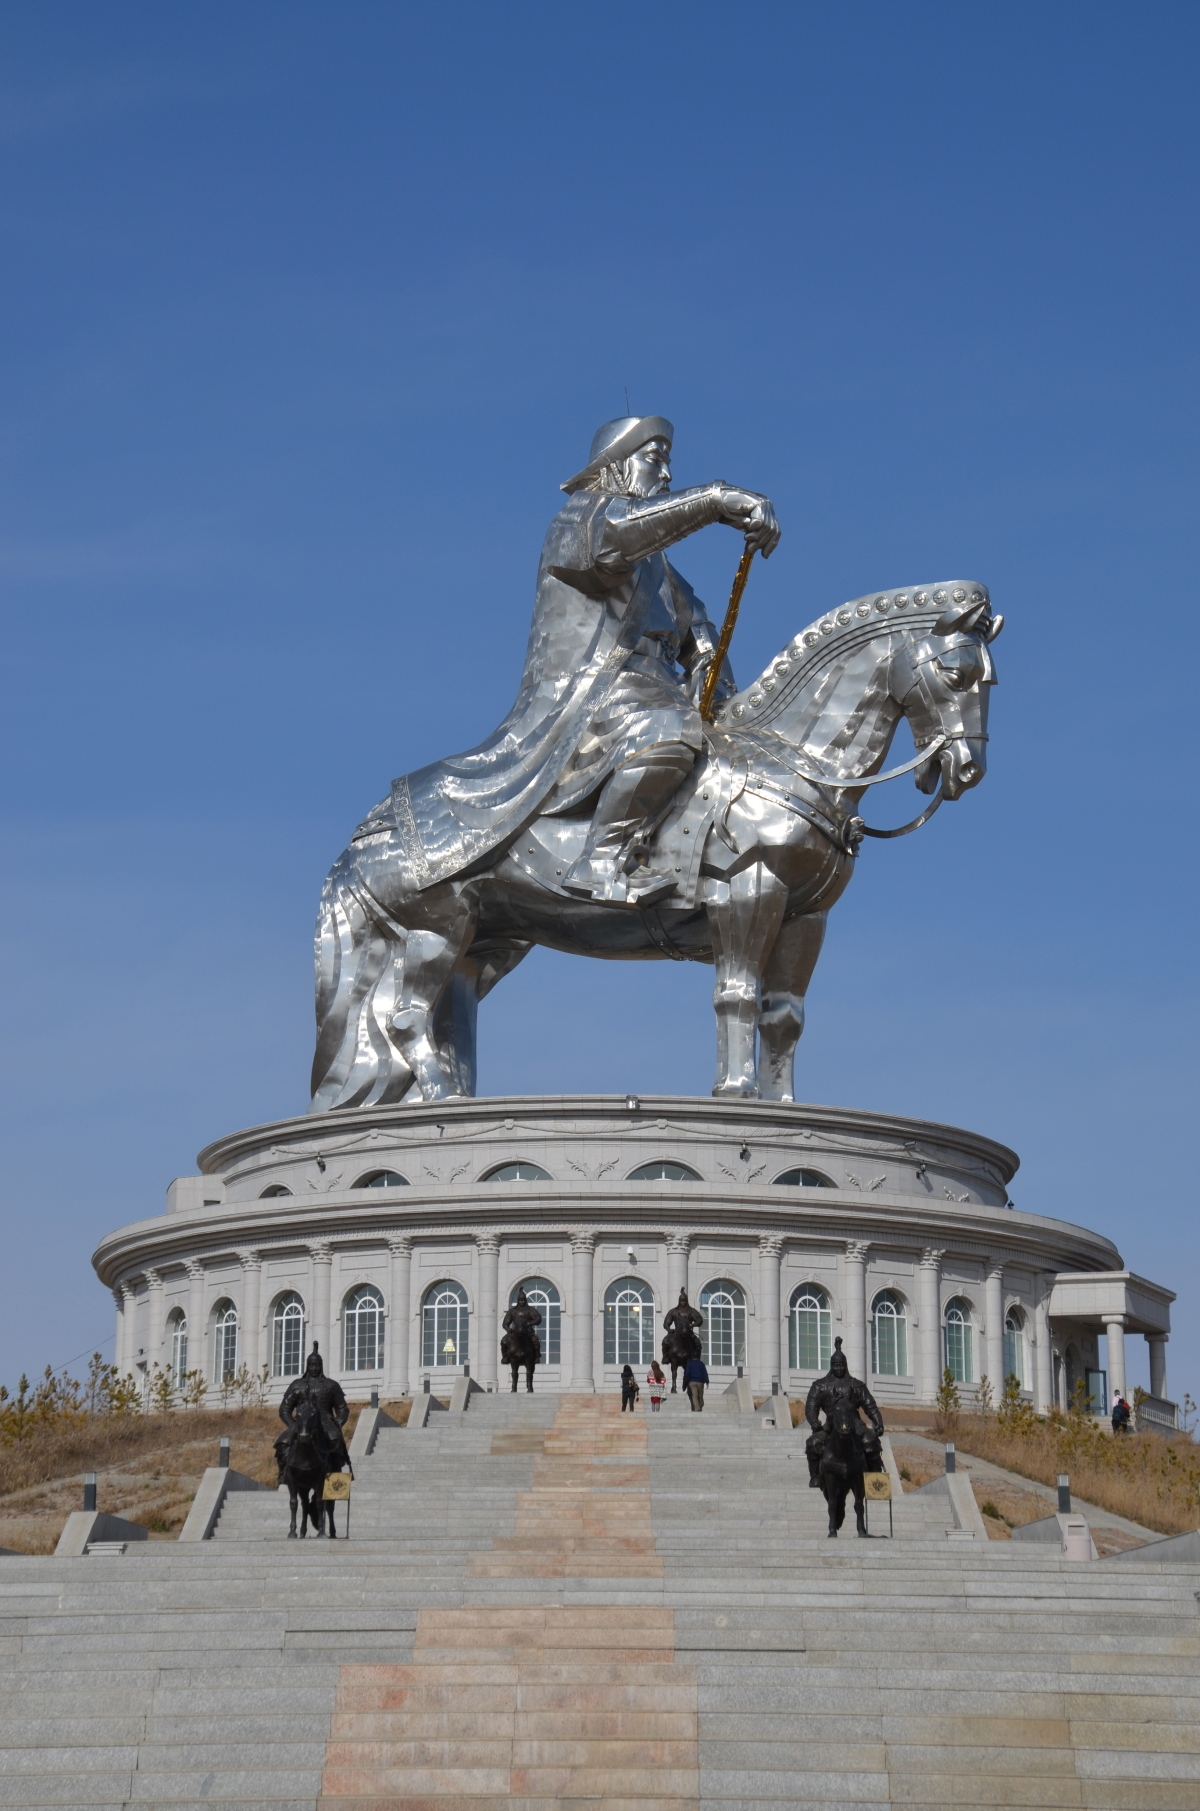 Into the MongolianSteppe